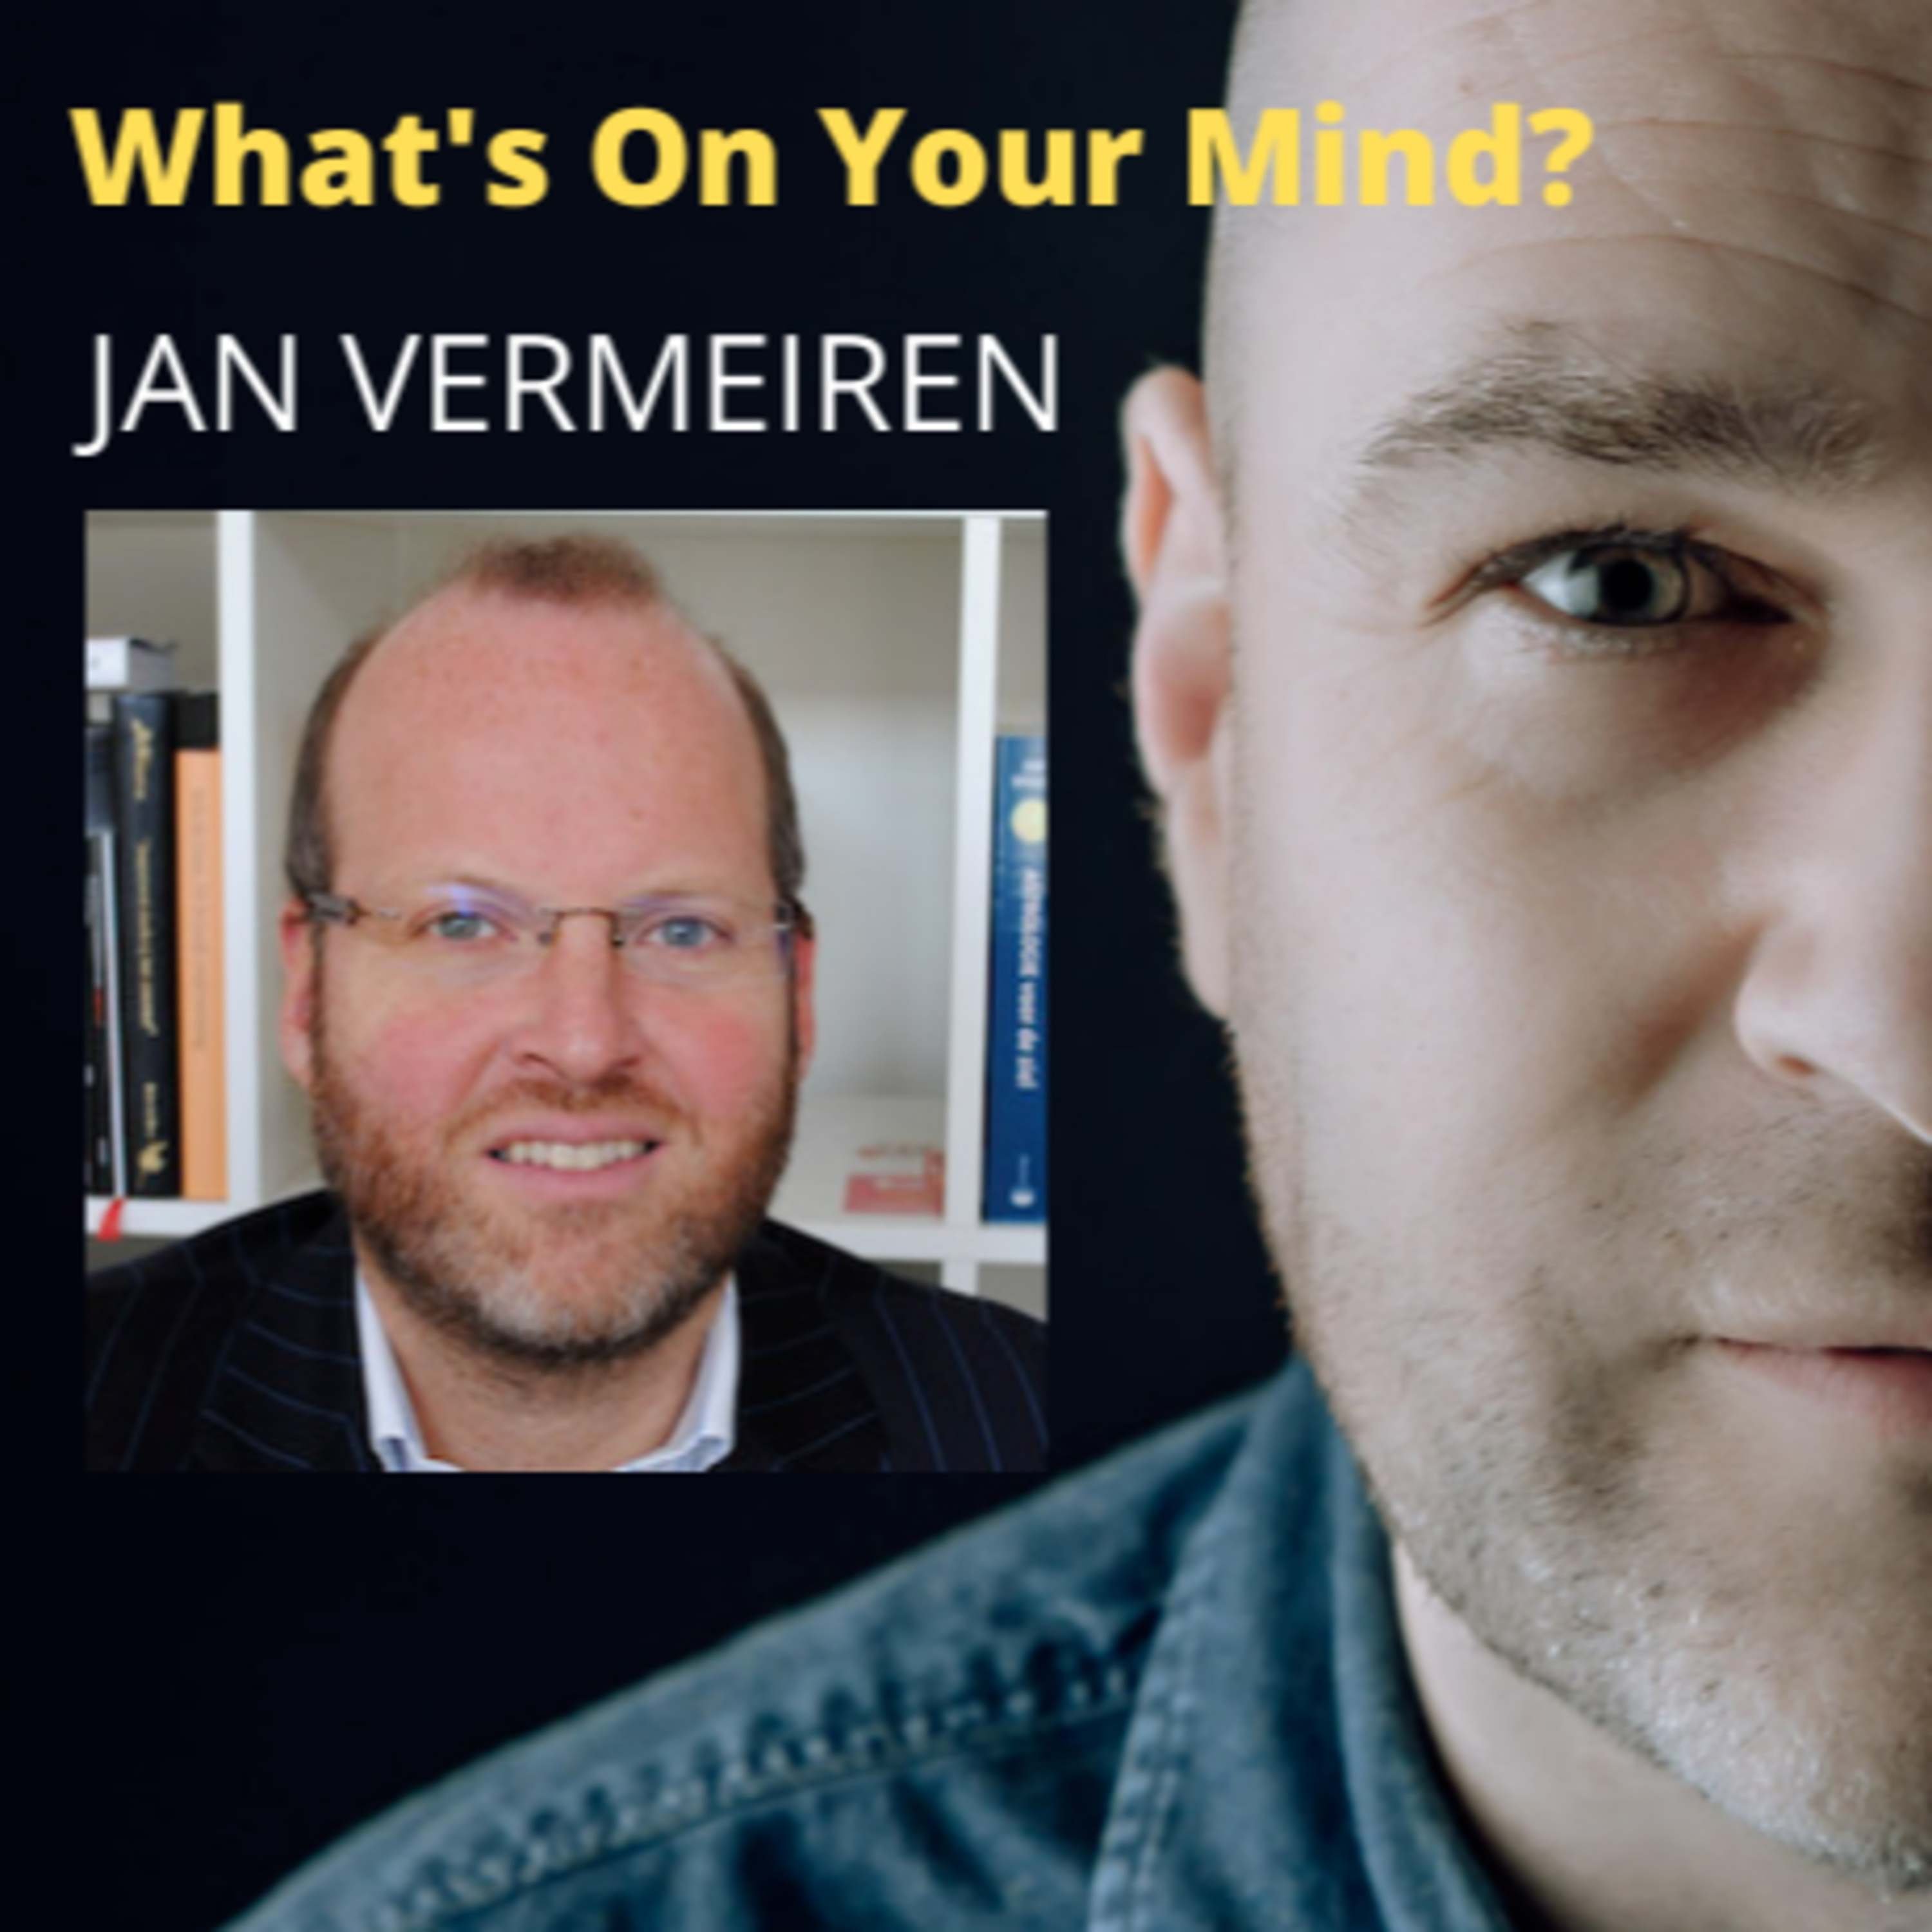 WOYM 46: Jan Vermeiren About LinkedIn, Networking, Writing Books & Compassion